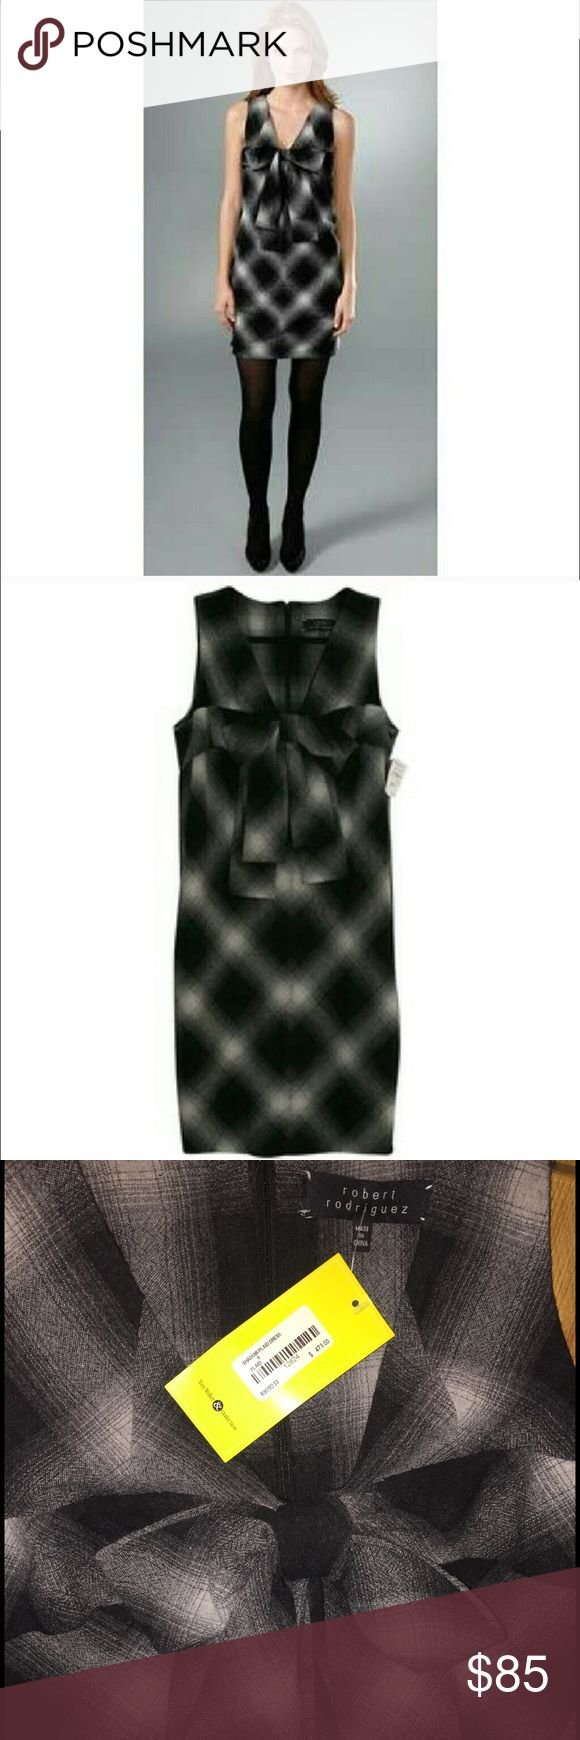 """NWT Robert Rodriguez """"Shadow Plaid"""" dress NWT Robert Rodriguez """"Shadow Plaid"""" dress. The designer is loved by celebrities like Nicole Kidman & Ariana Grande. Very stylish sleeveless dress, beautiful large bow on chest. This dress can be worn to a formal event or pair with tights & flats for a more casual look. 75% wool, 25% nylon (this is the first piece of clothing I have owned that was wool and did not feel itchy). This dress is extremely comfortable & is also lined with a very silky…"""